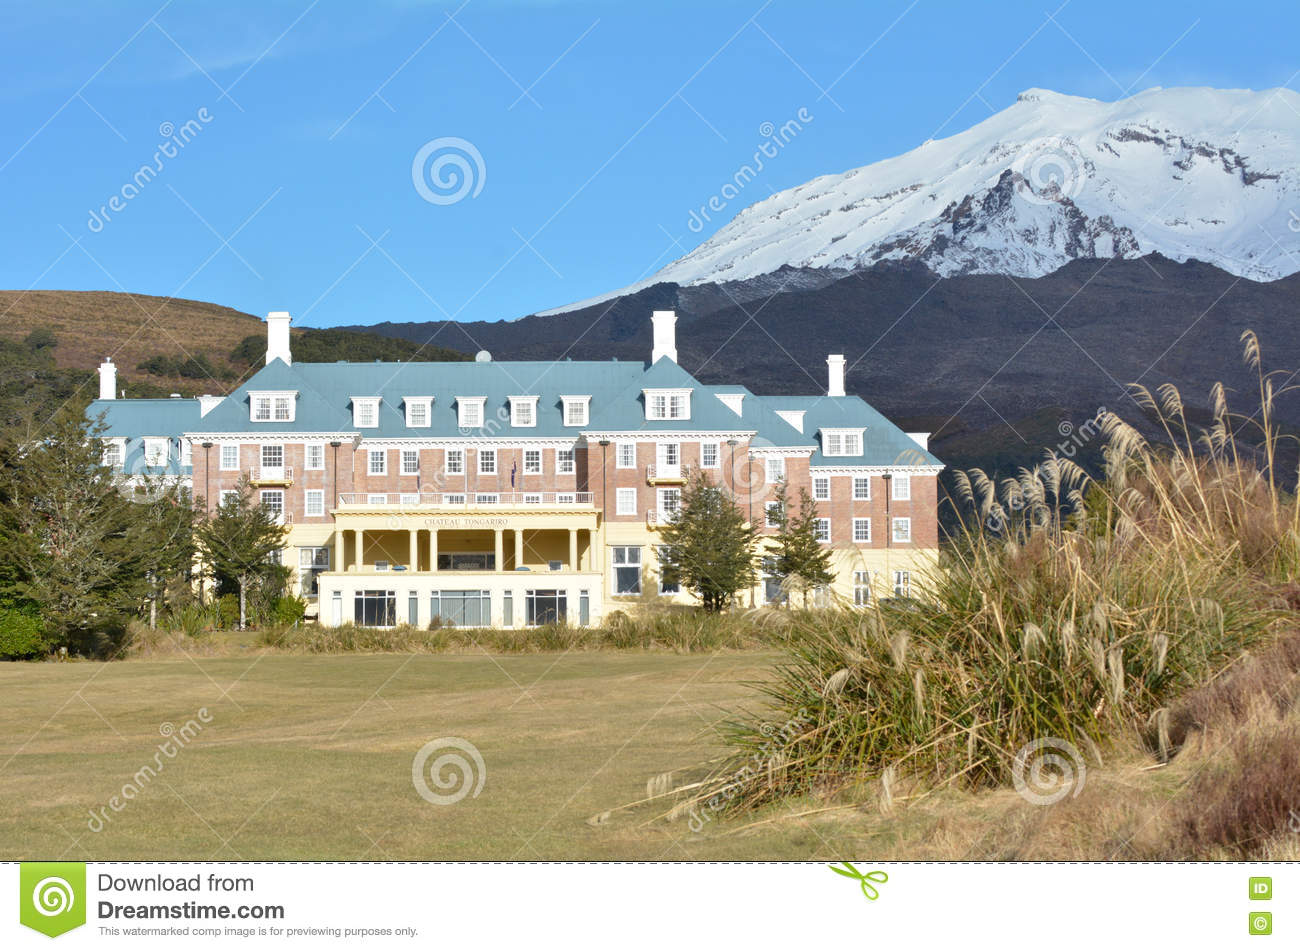 Mount Ruapehu And The Chateau In Tongariro National Park Stock.